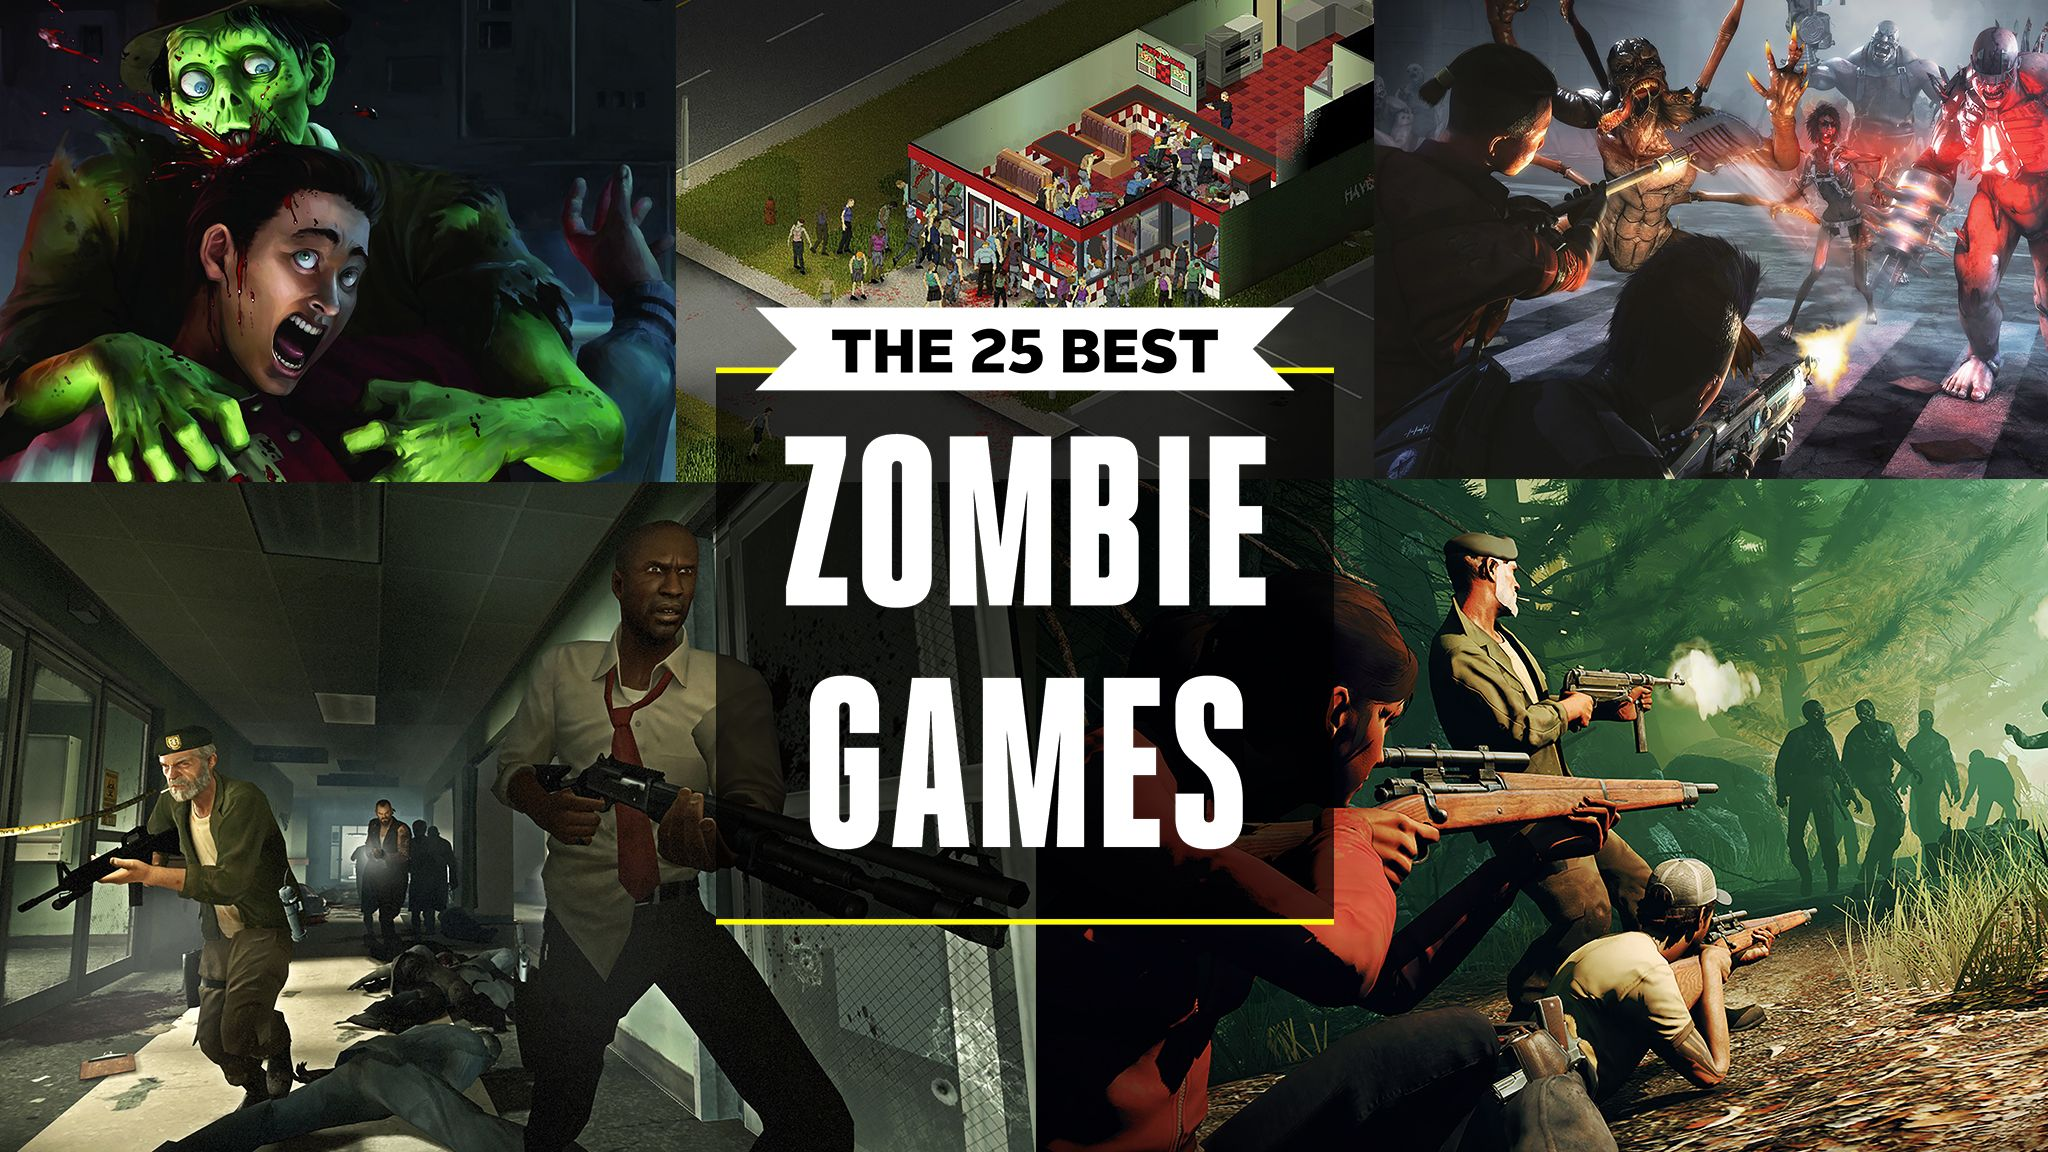 The 25 Best Zombie Games